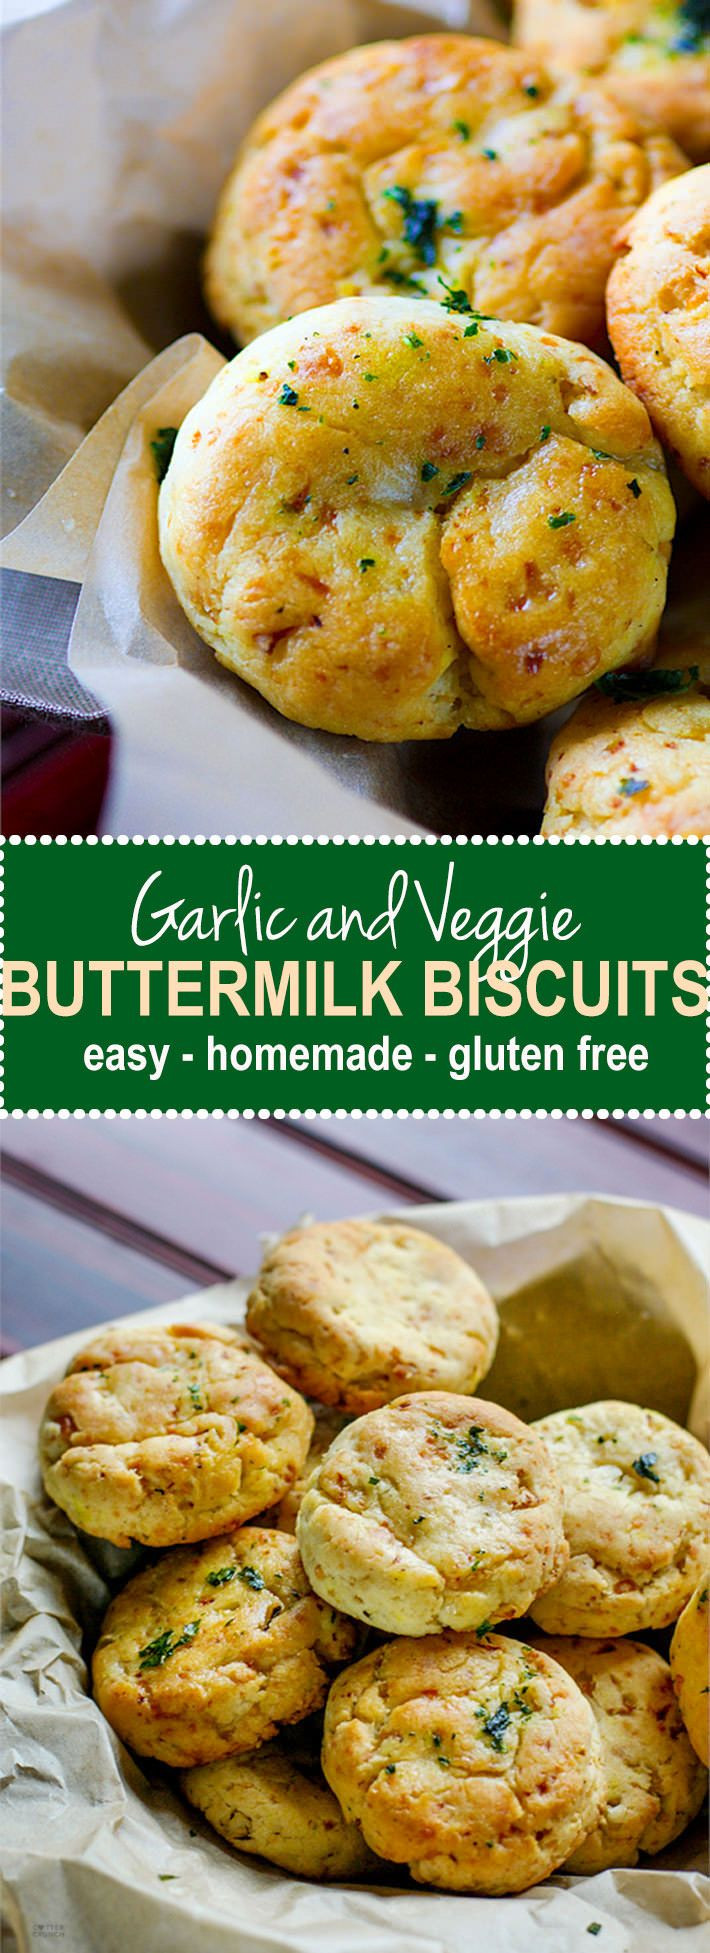 Easy Healthy Gluten Free Recipes  Healthy Recipes Easy Homemade Gluten Free Buttermilk